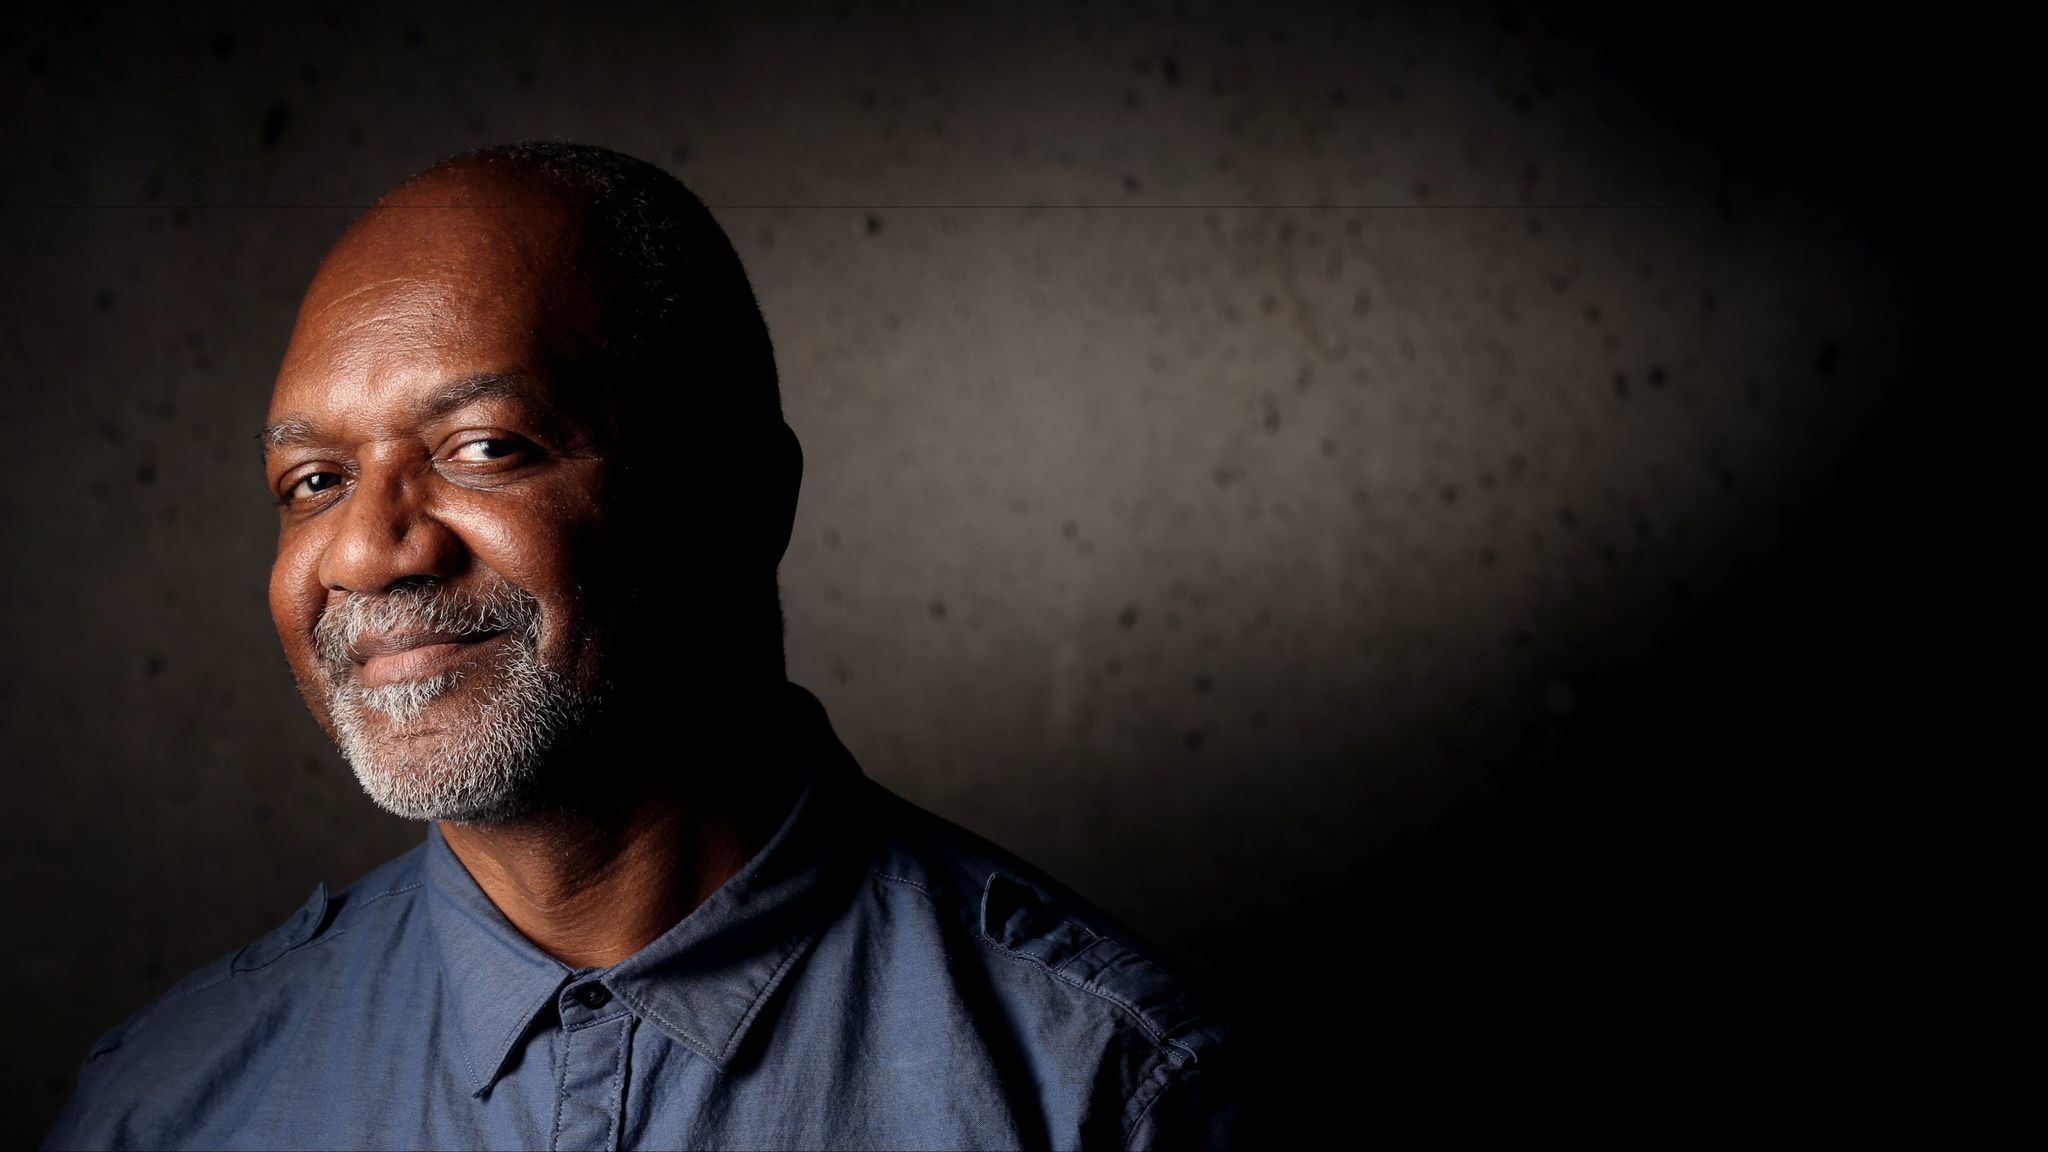 For Kerry James Marshall, the mission is clear: Bring ...